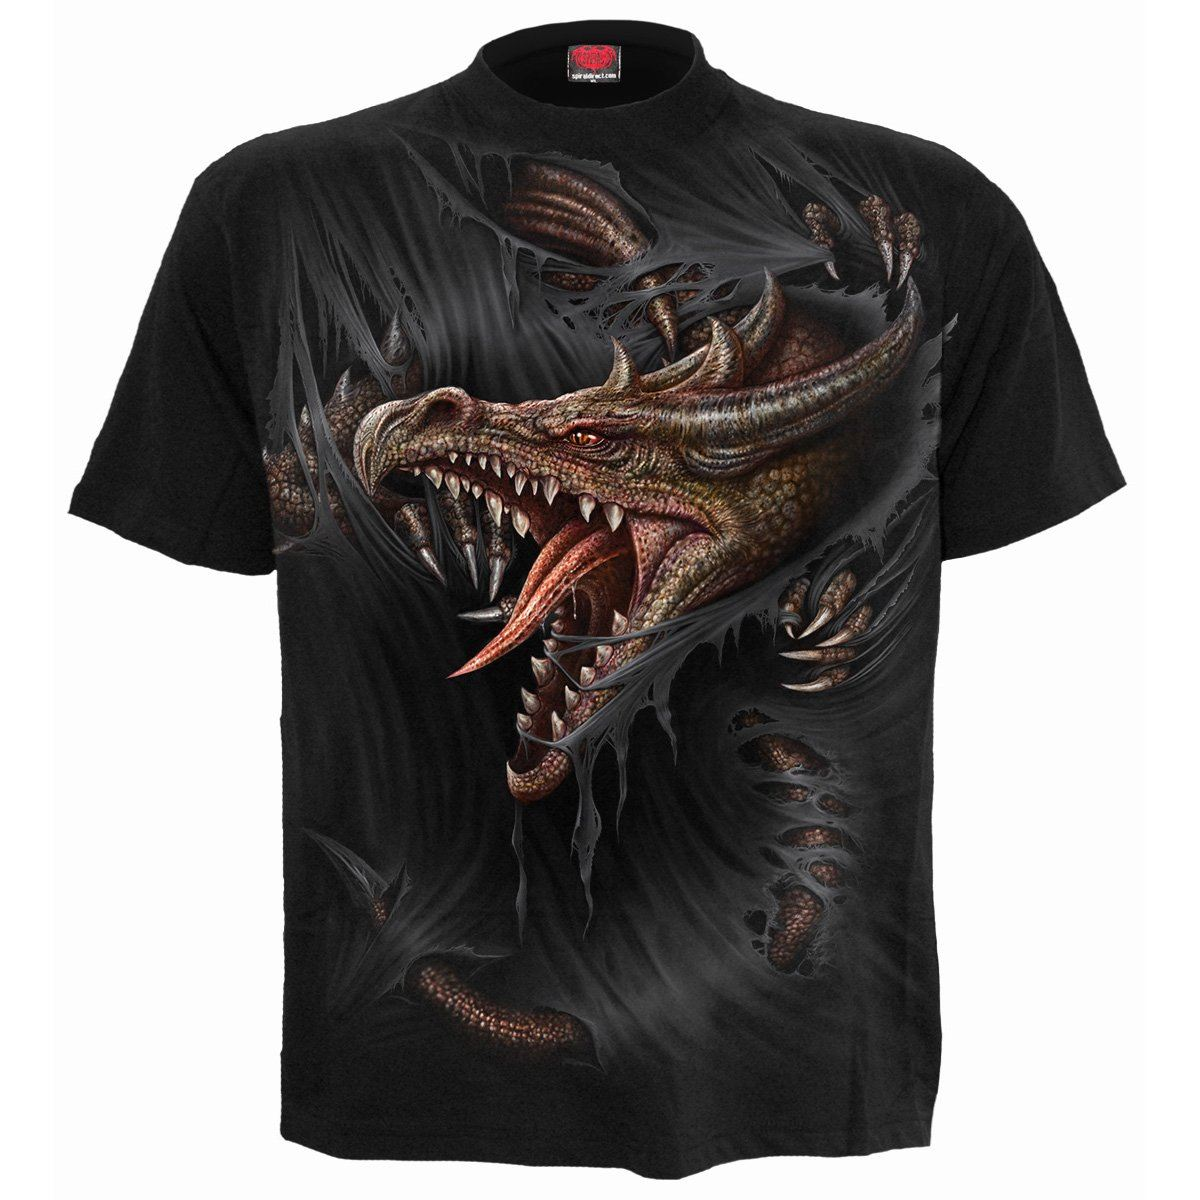 Captive Dragon Kid's Black T-Shirt